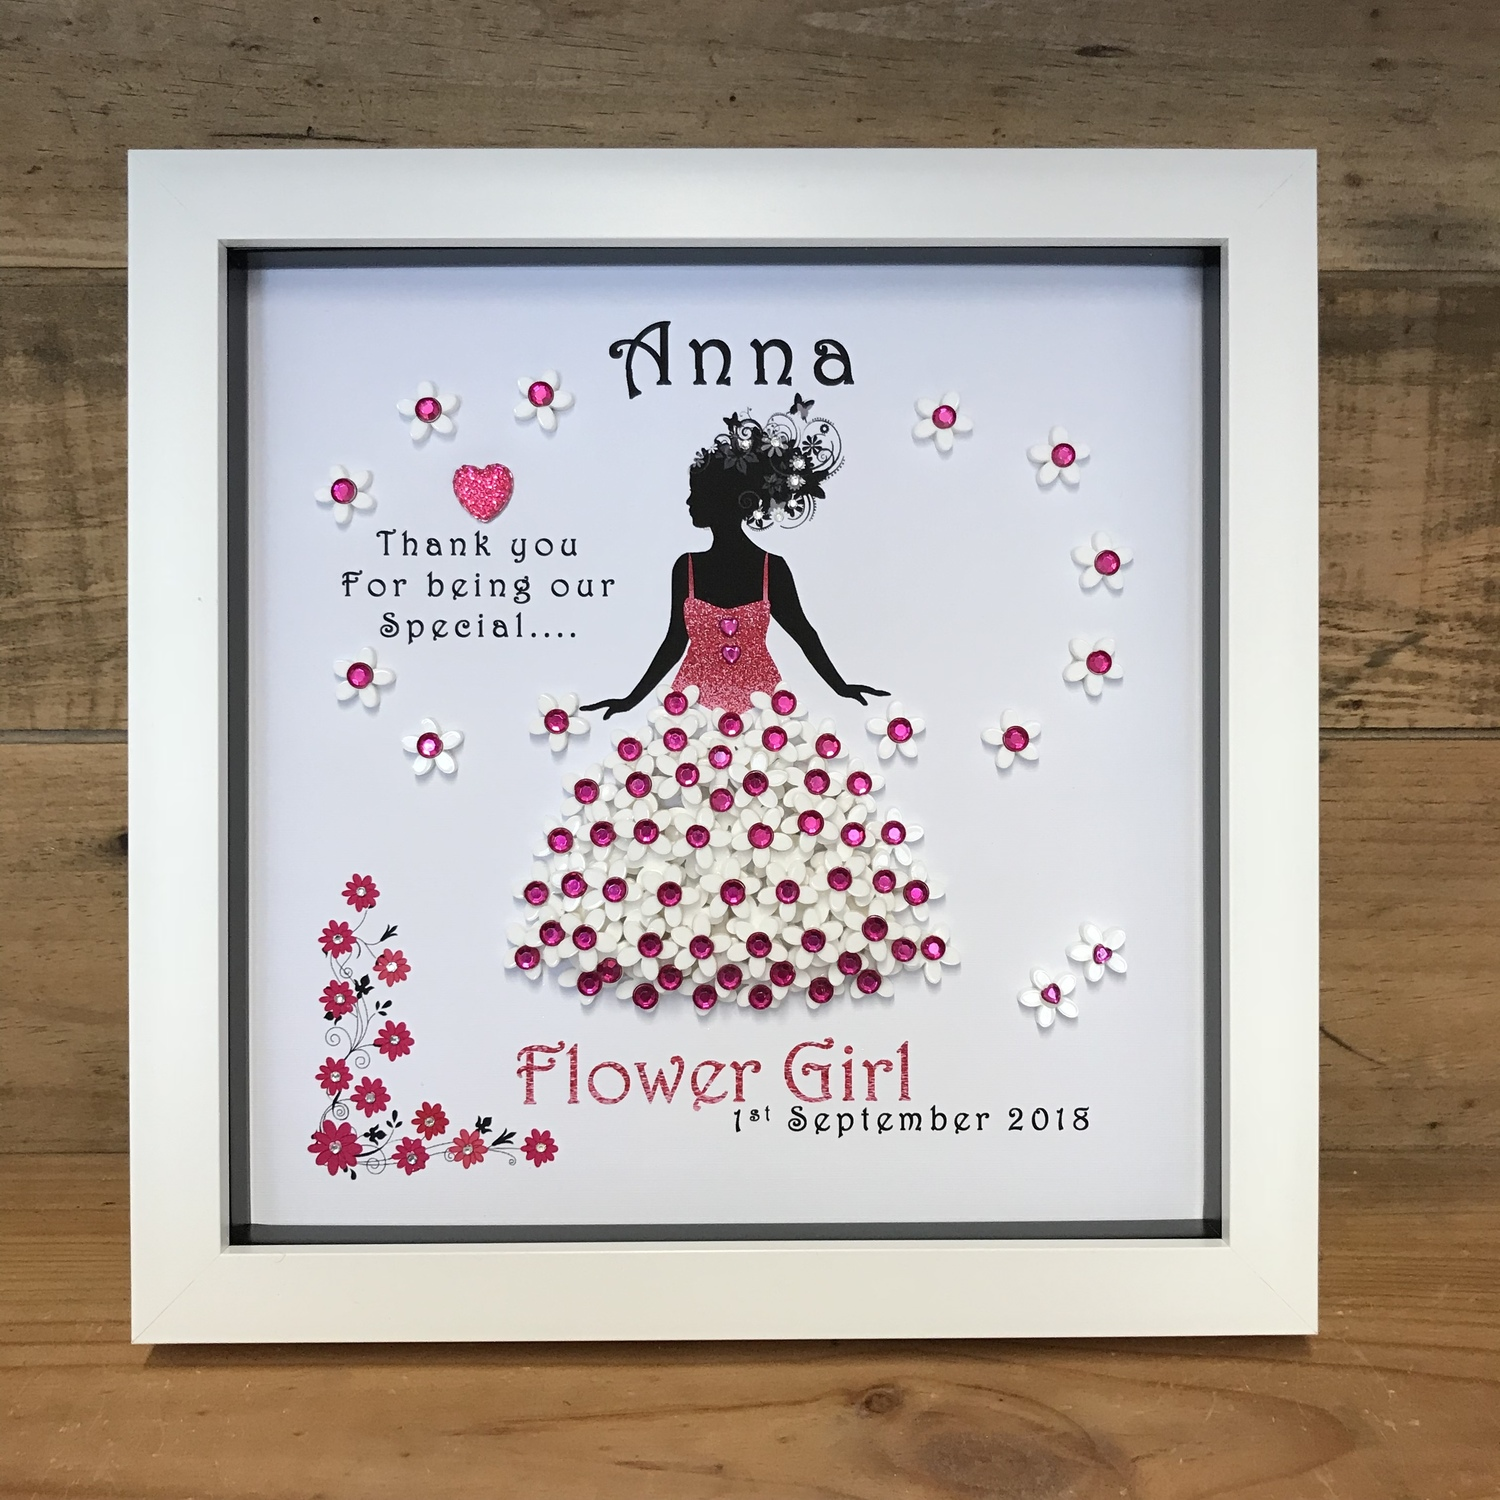 Unique Personalised Flower Girl Framed Print gifts Unusual present ideas